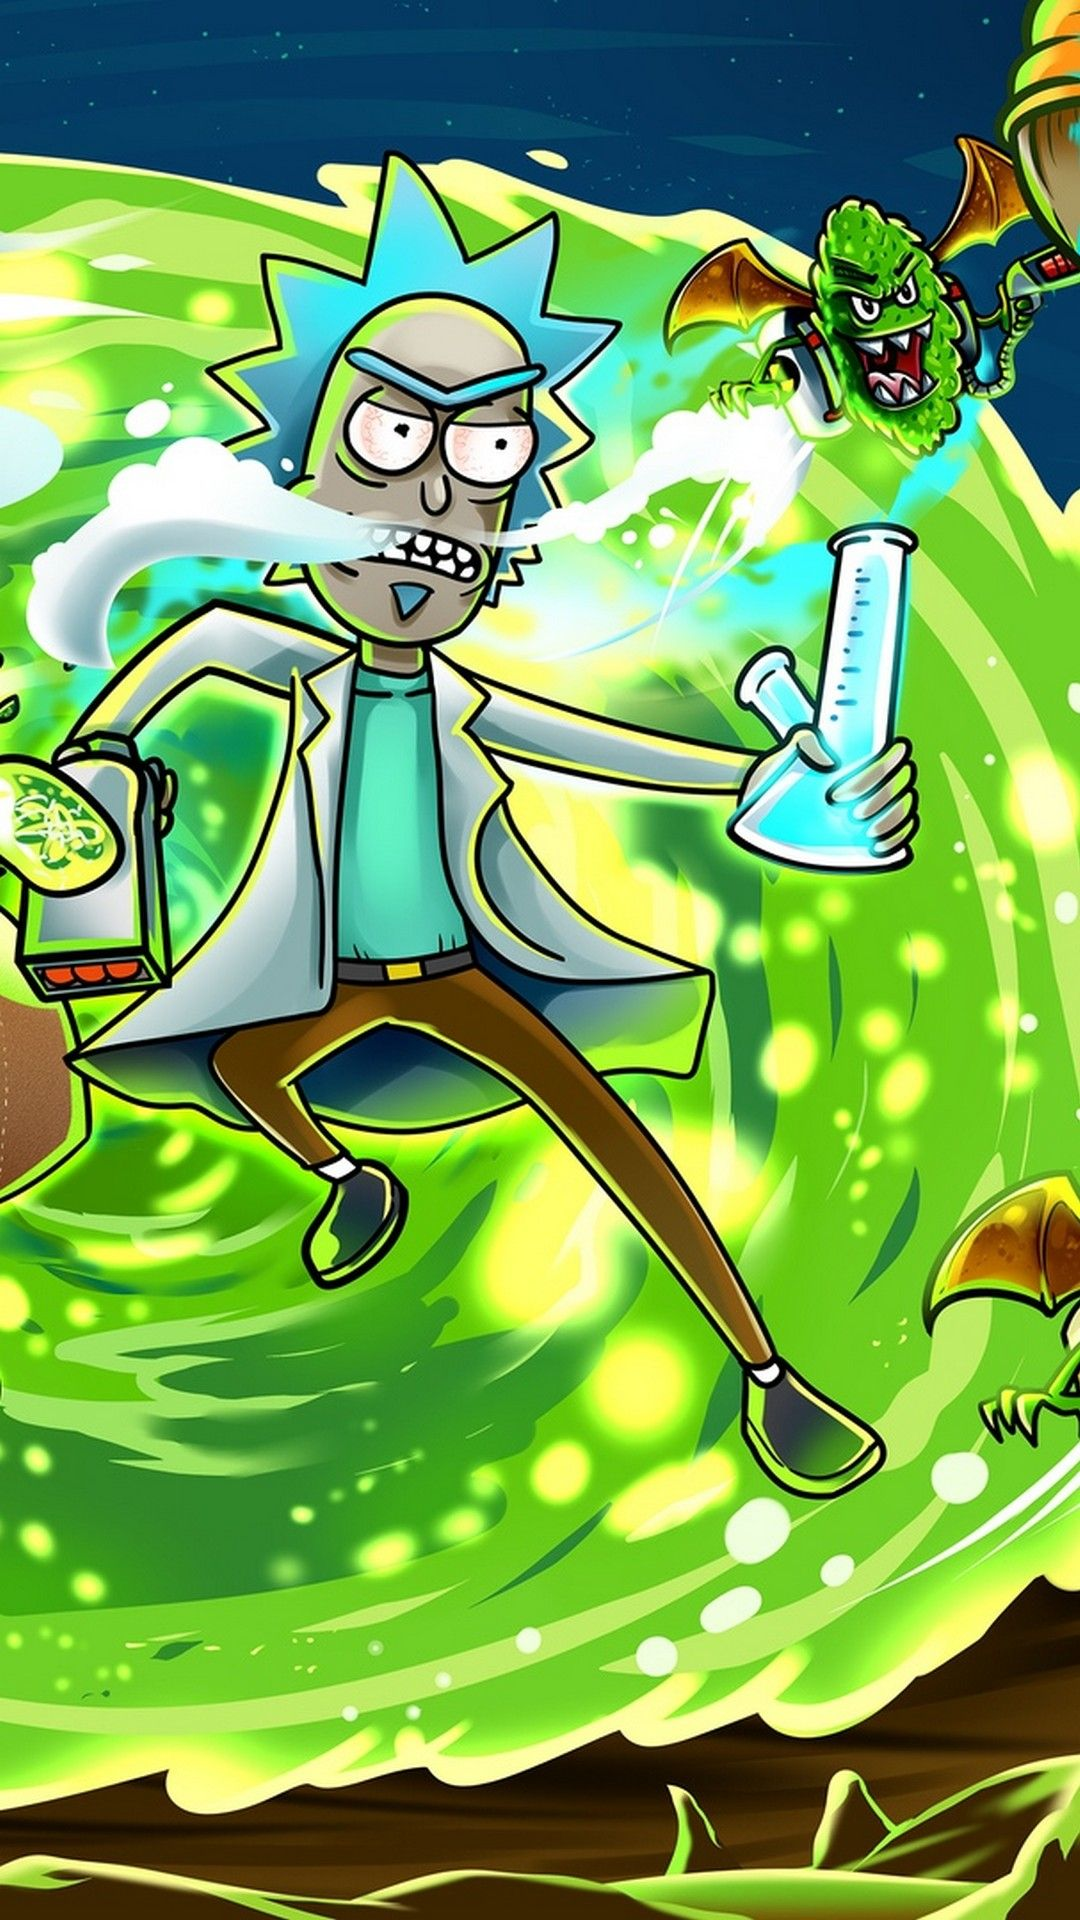 Mobile Wallpapers Rick And Morty 1080p Best Iphone Wallpaper Rick And Morty Wallpapers Morty Wallpaper Cartoon Wallpaper